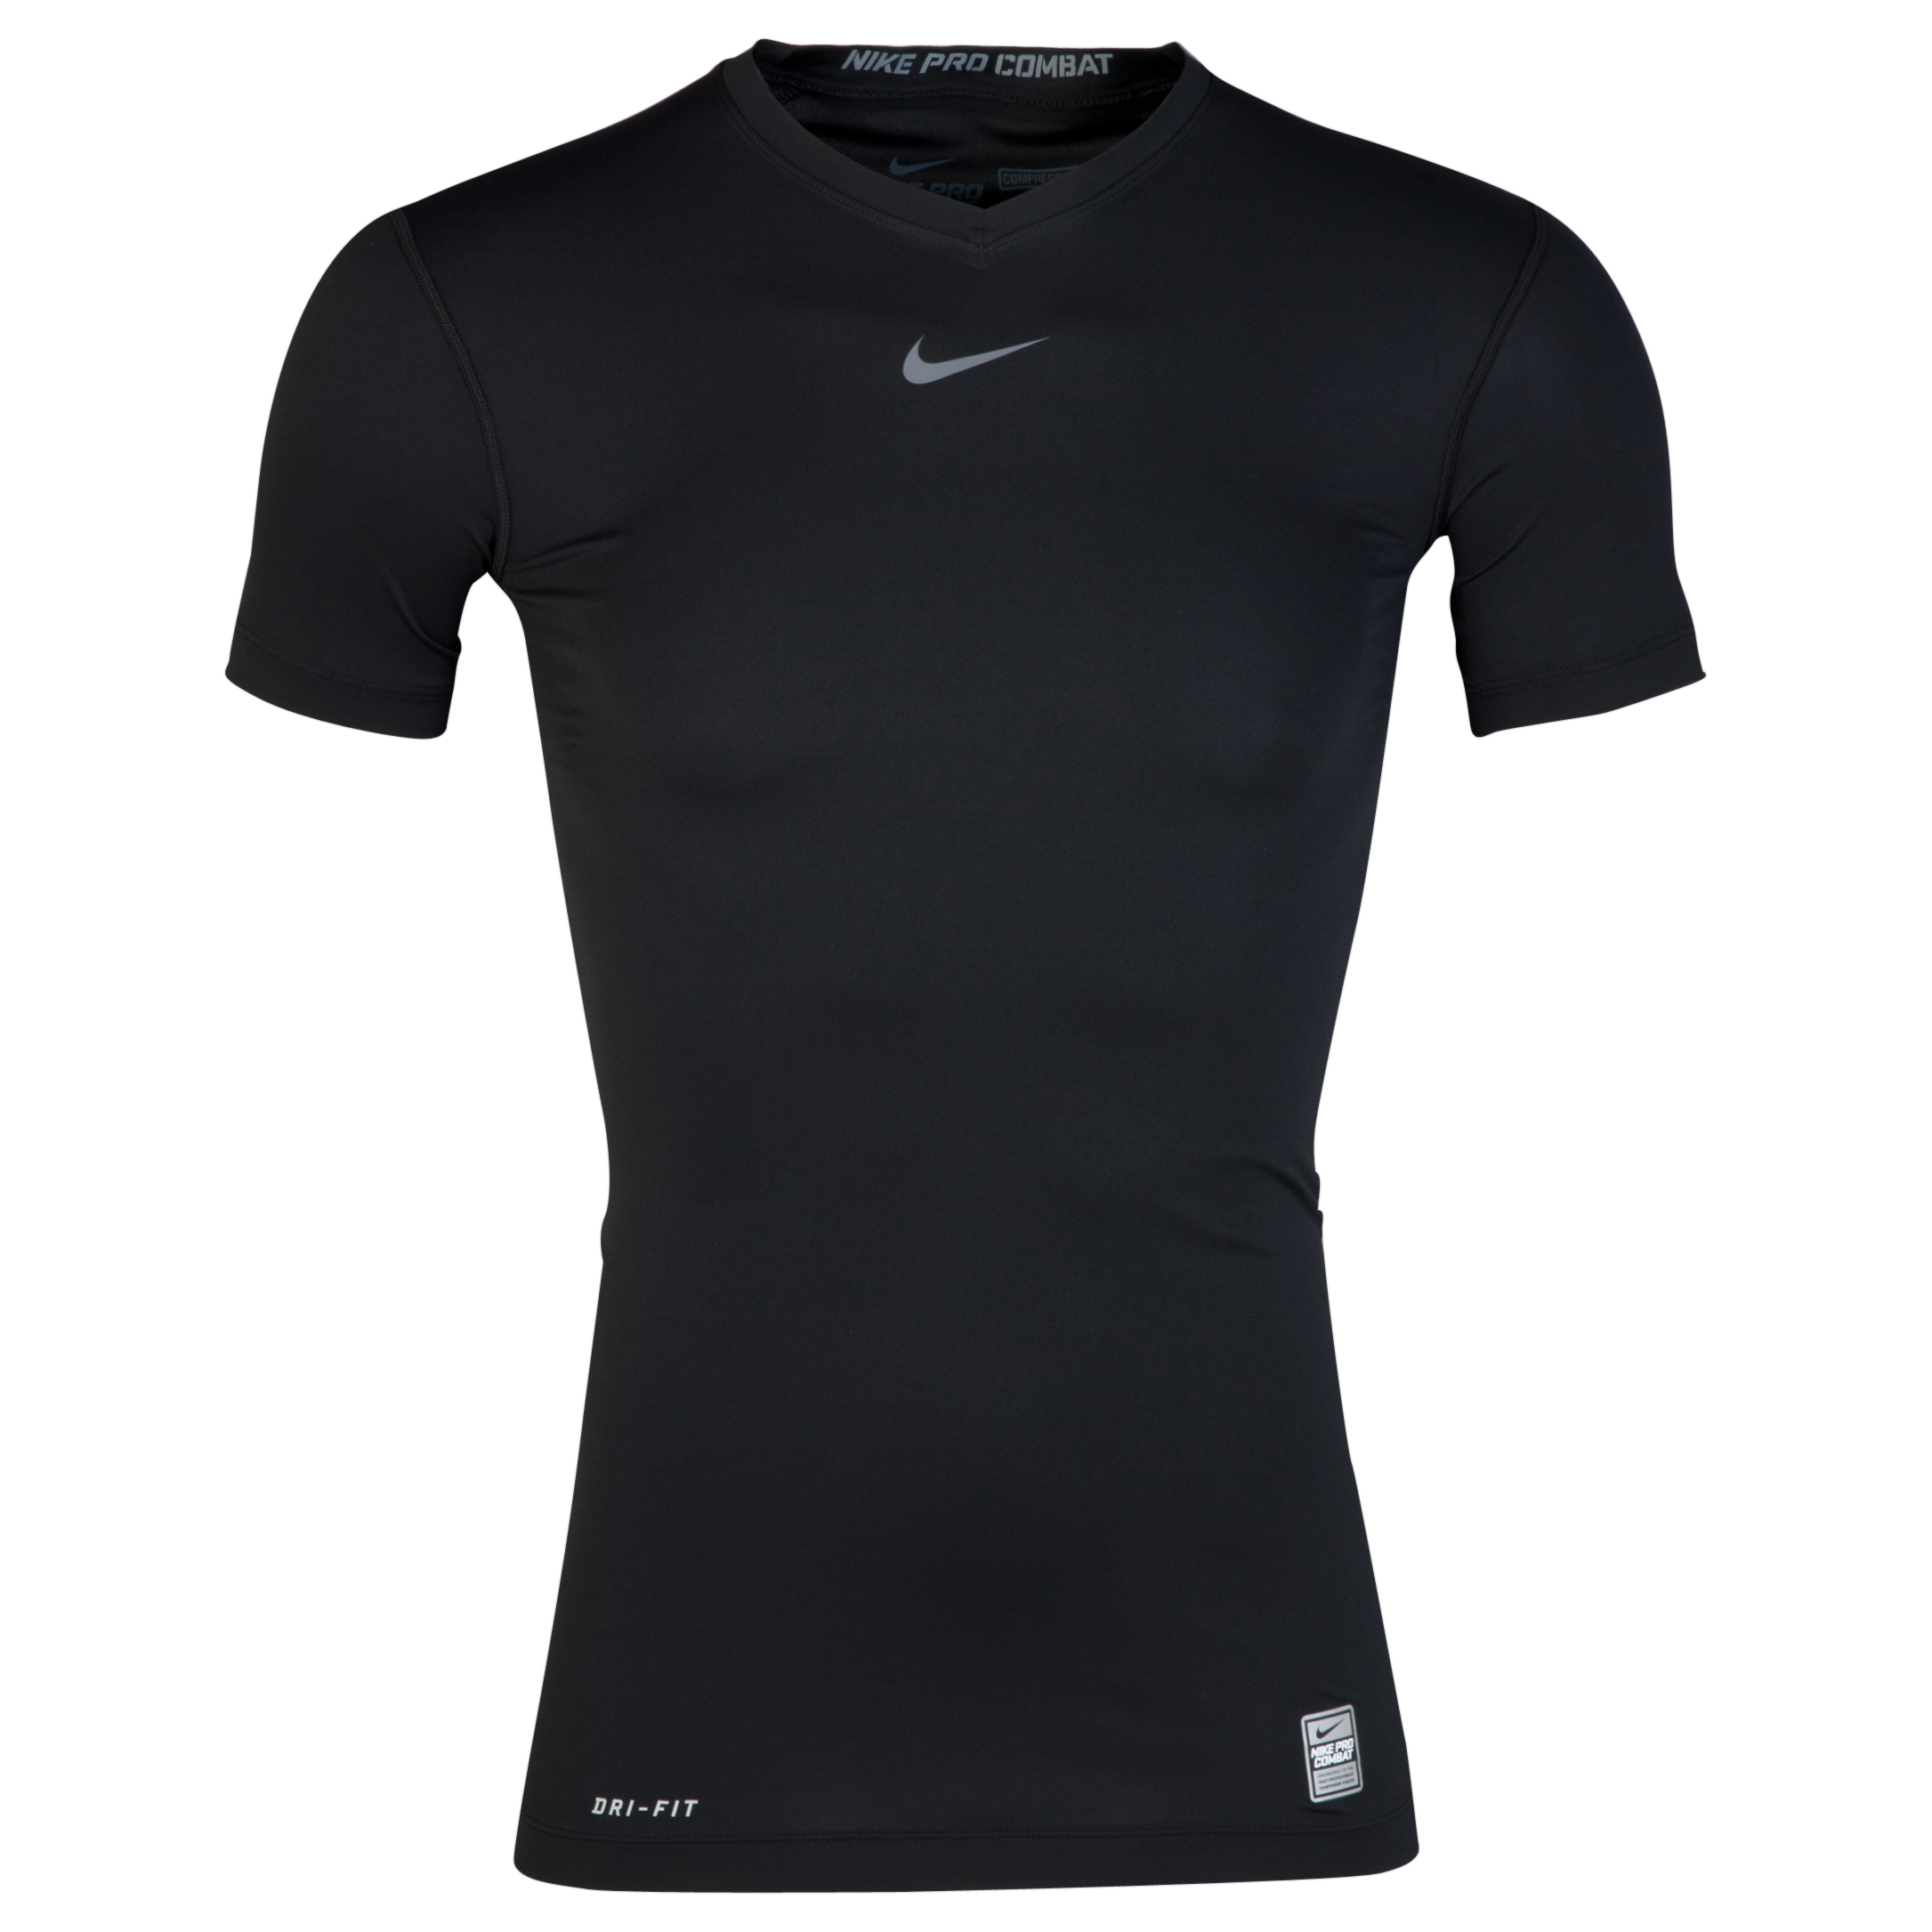 Nike Pro Combat Ultralight Base Layer Top Black